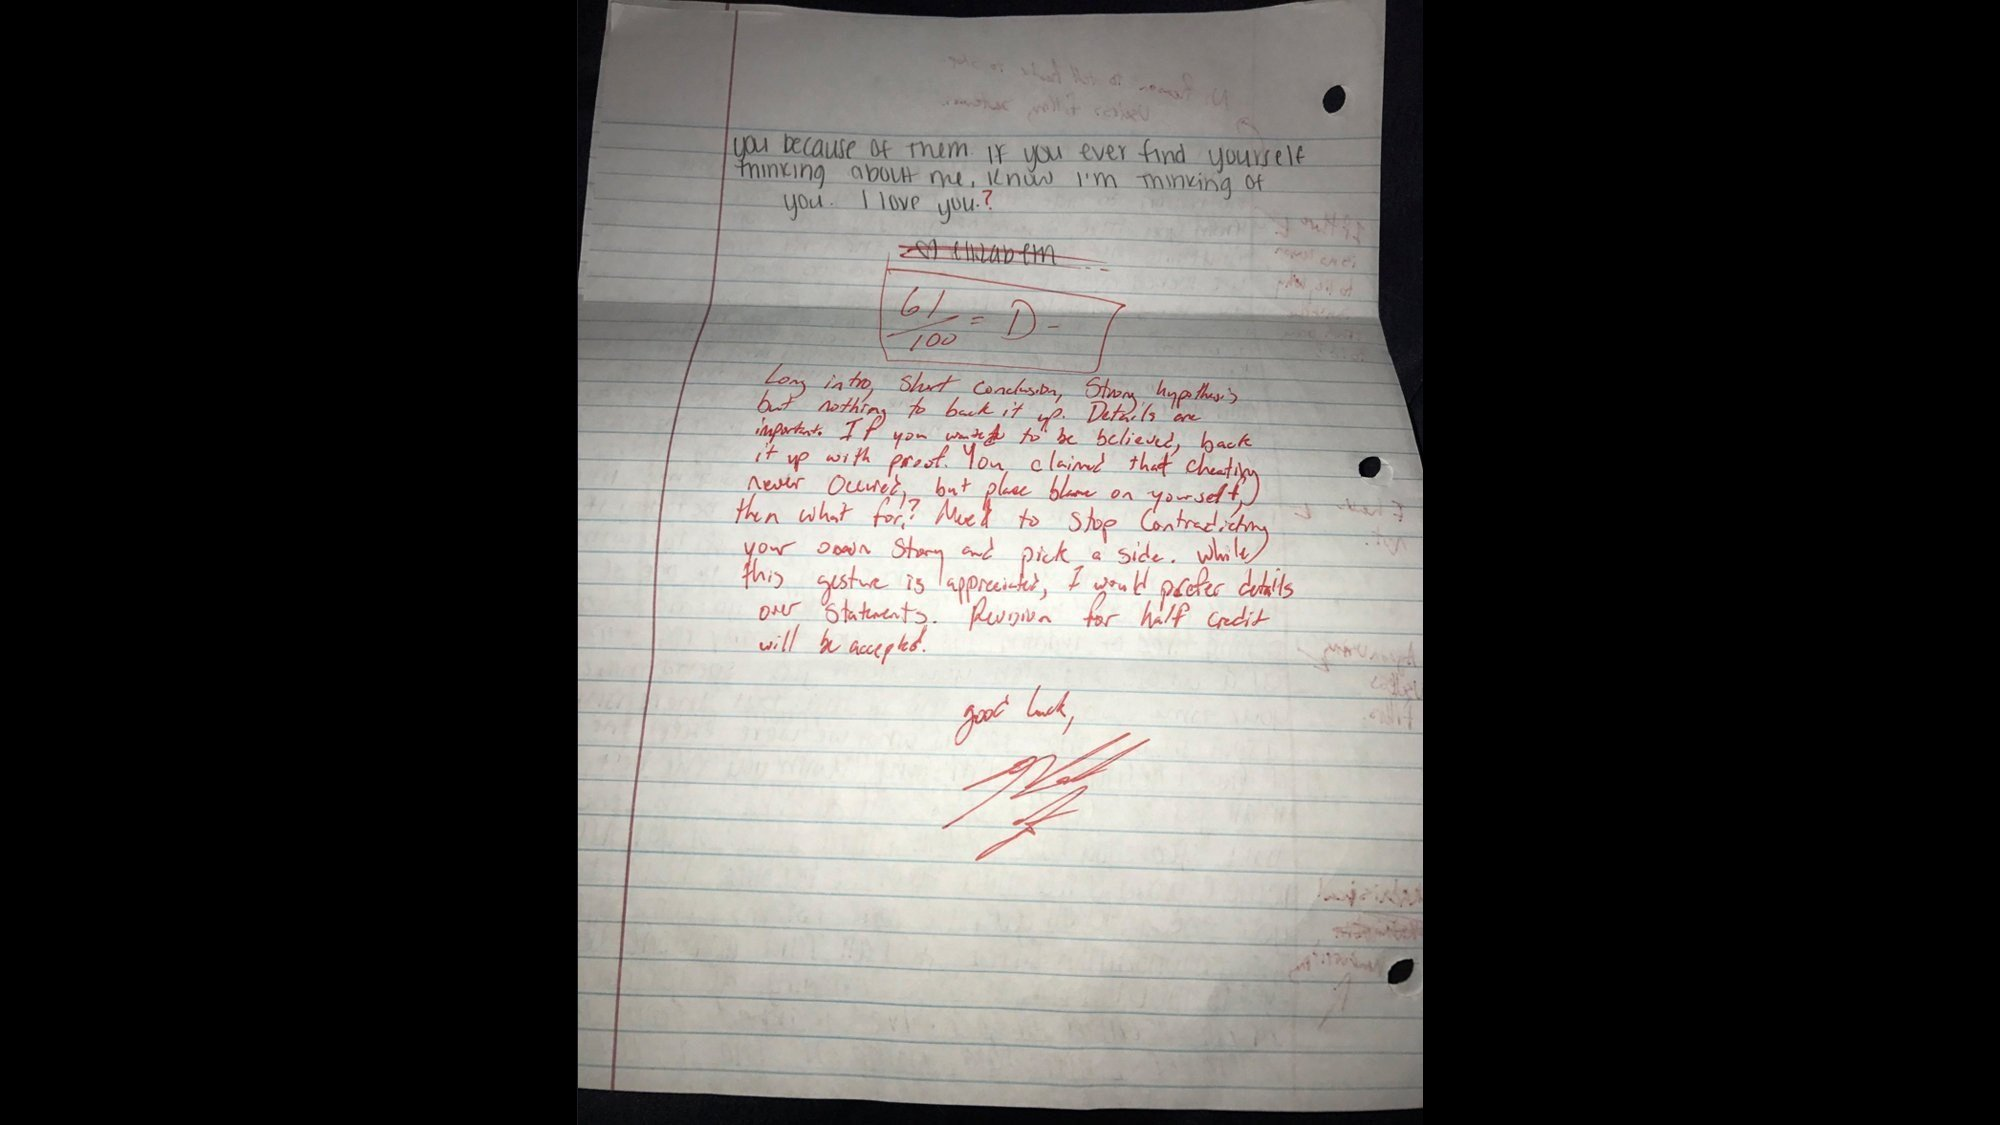 Student suspended for grading ex's apology gets back in university